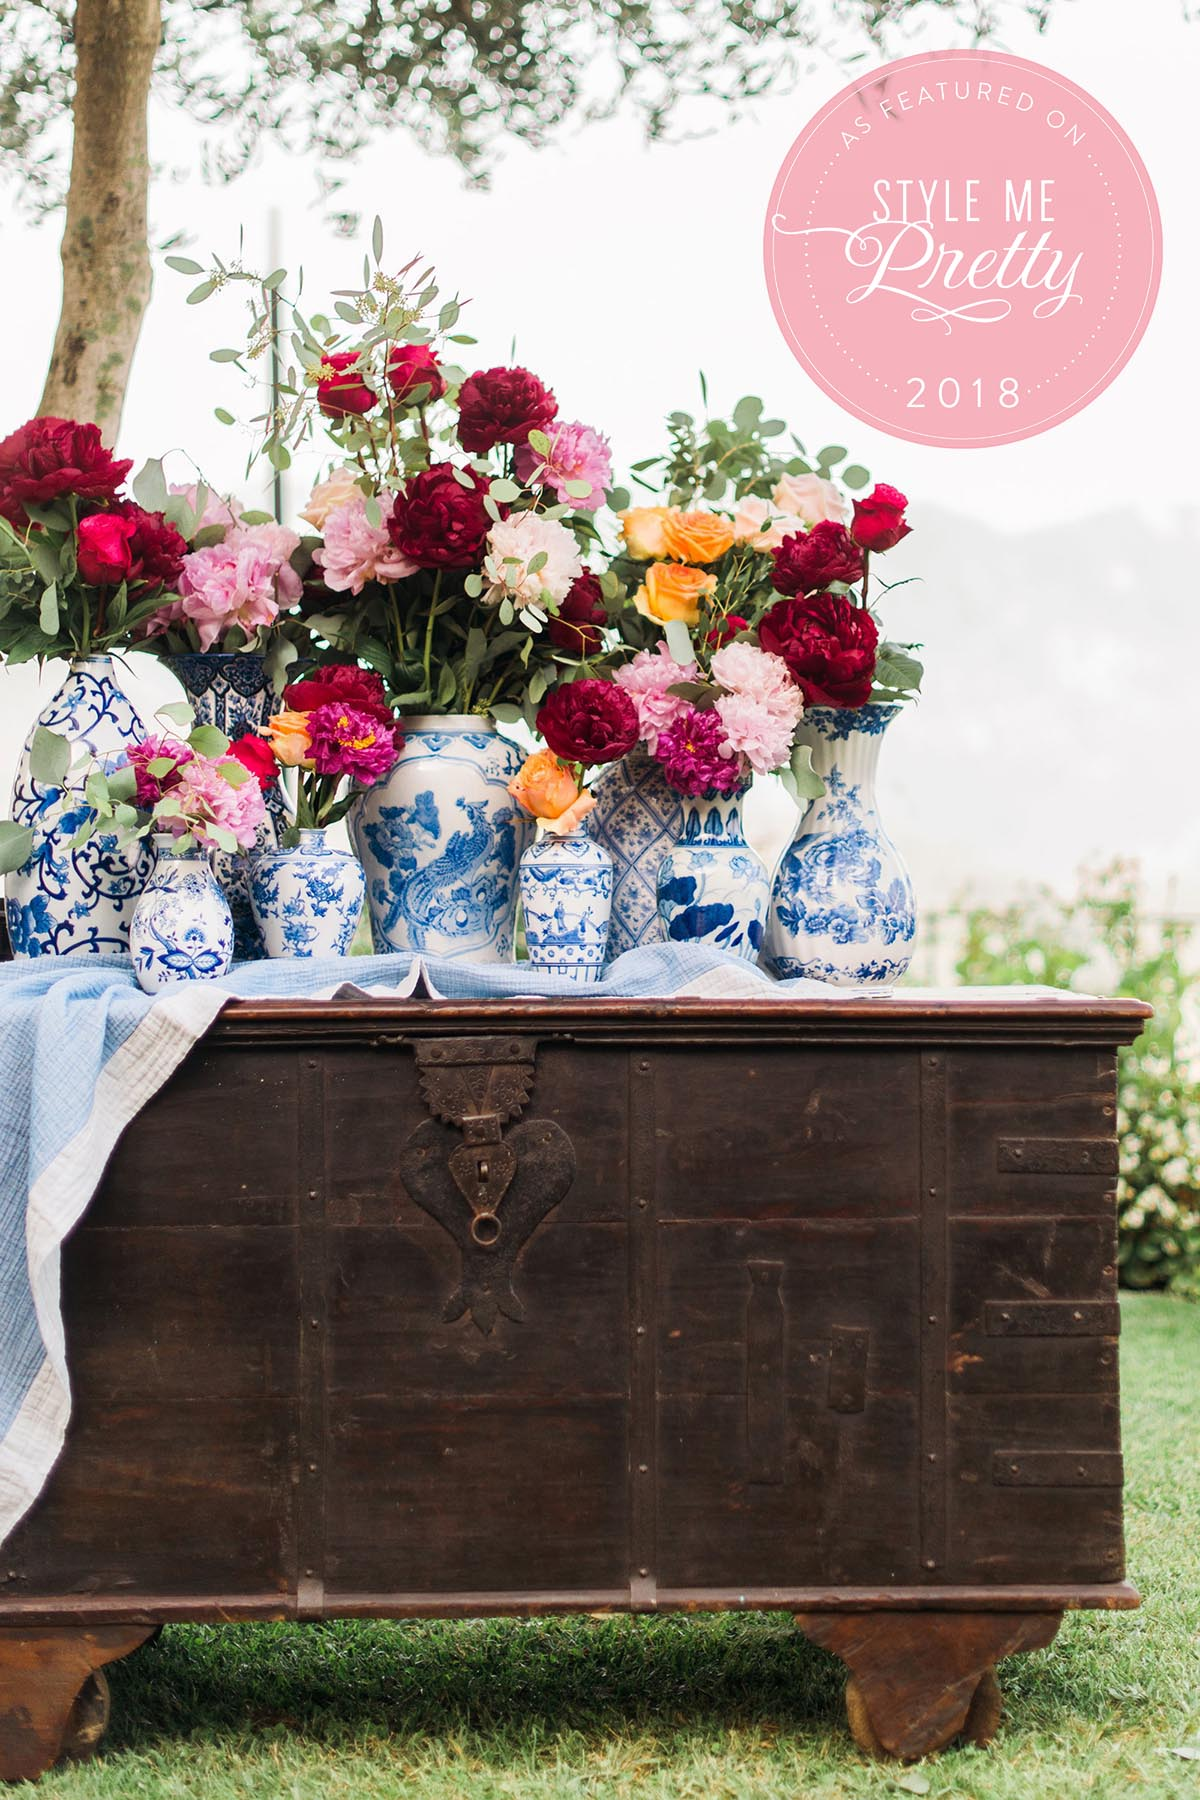 Chinese-pots-with-flowers-wedding-decor-with-peonies